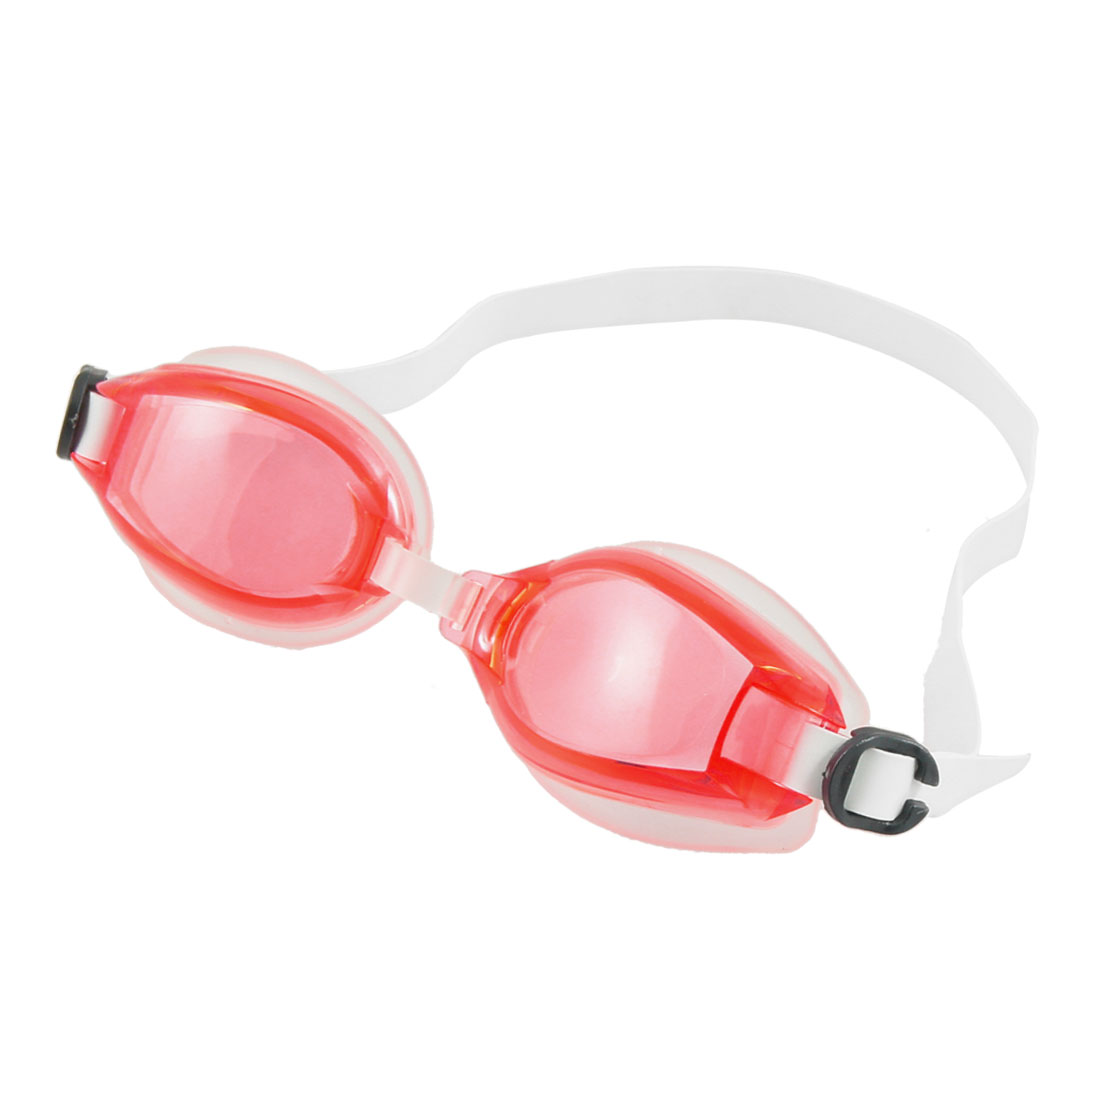 White Silicone Strap Clear Red Plastic Lens Swimming Goggles Eyeglasses for Children